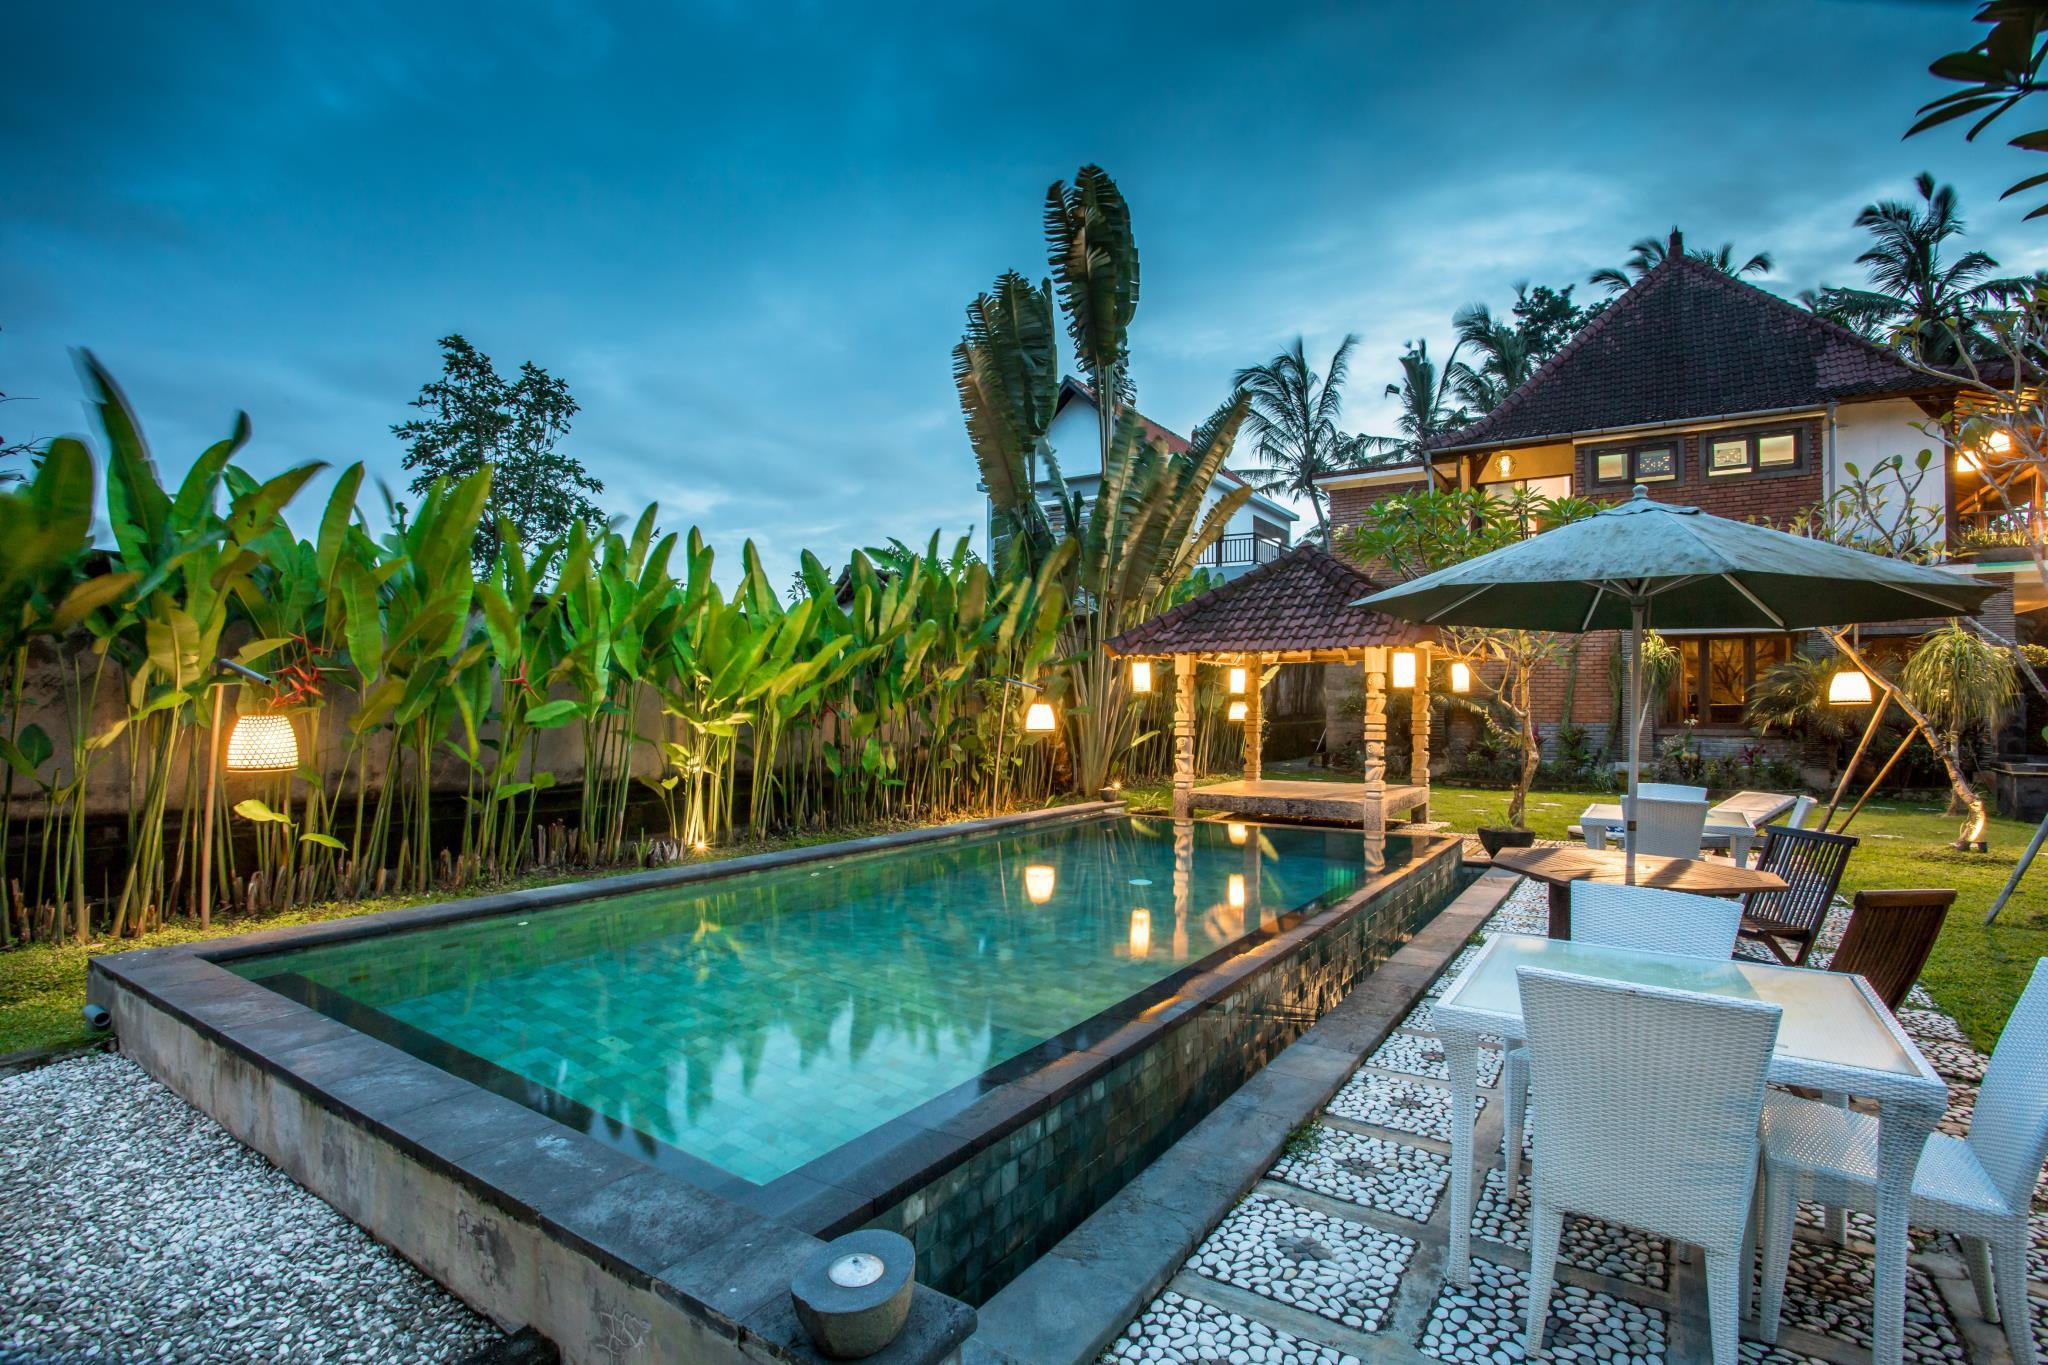 The Radian Villa Ubud ホテル詳細